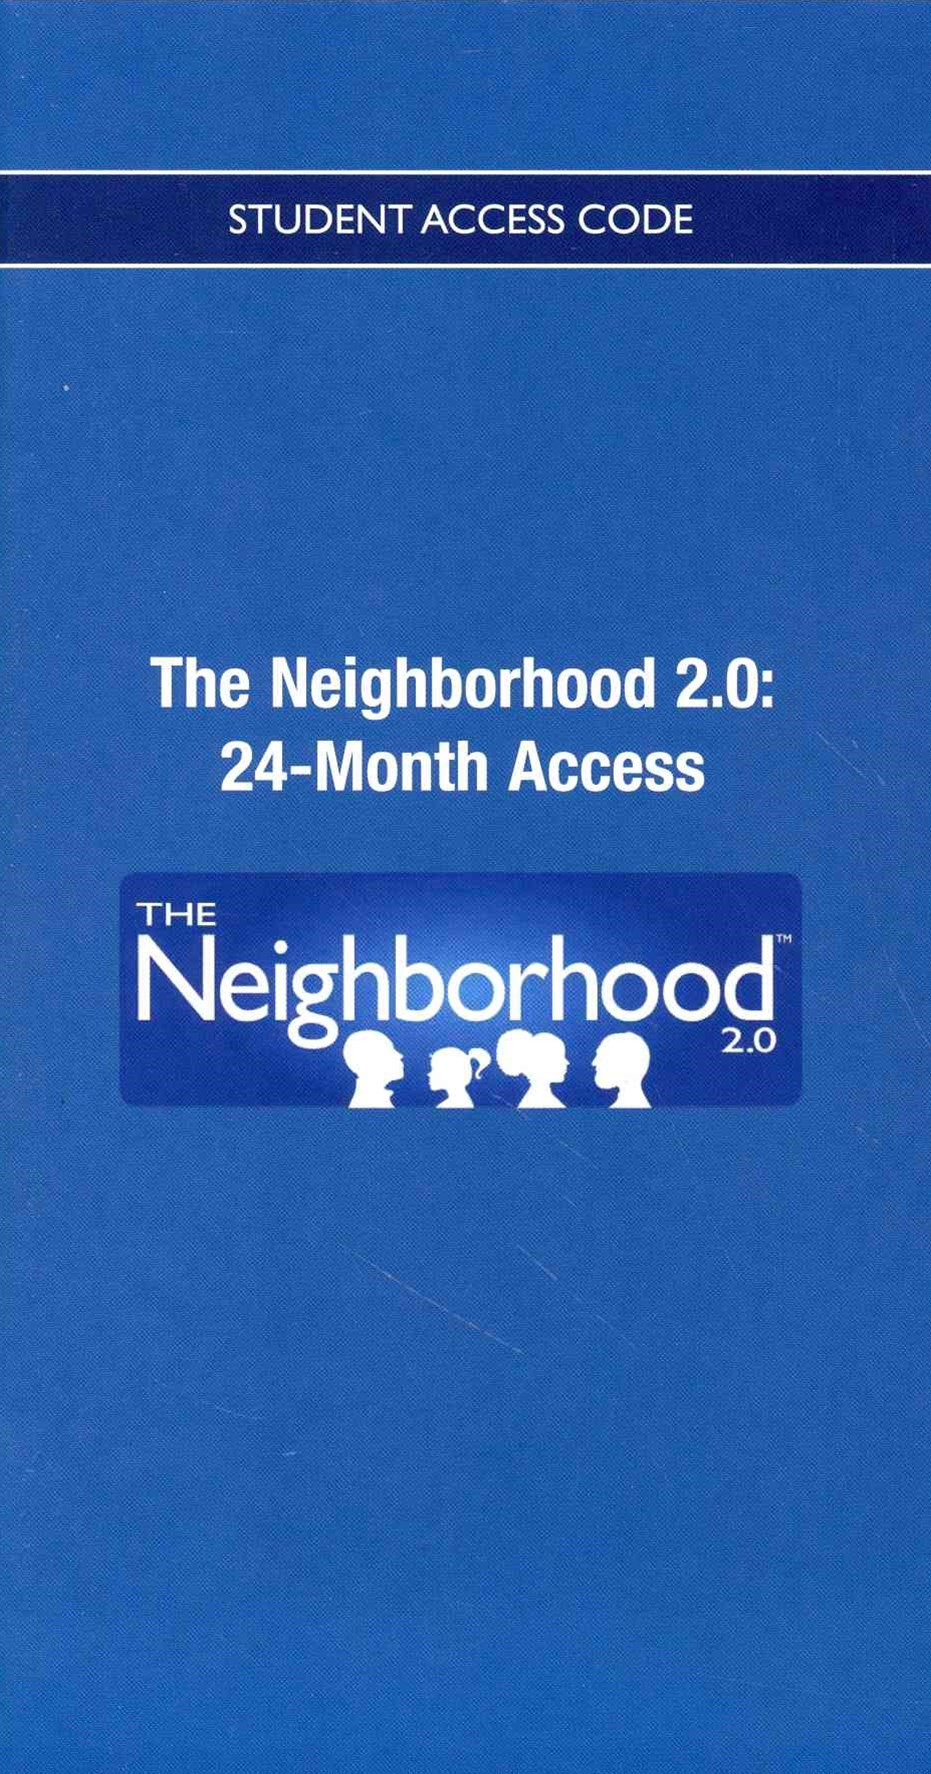 Neighborhood 2. 0 - Access Card (24 Month Access)